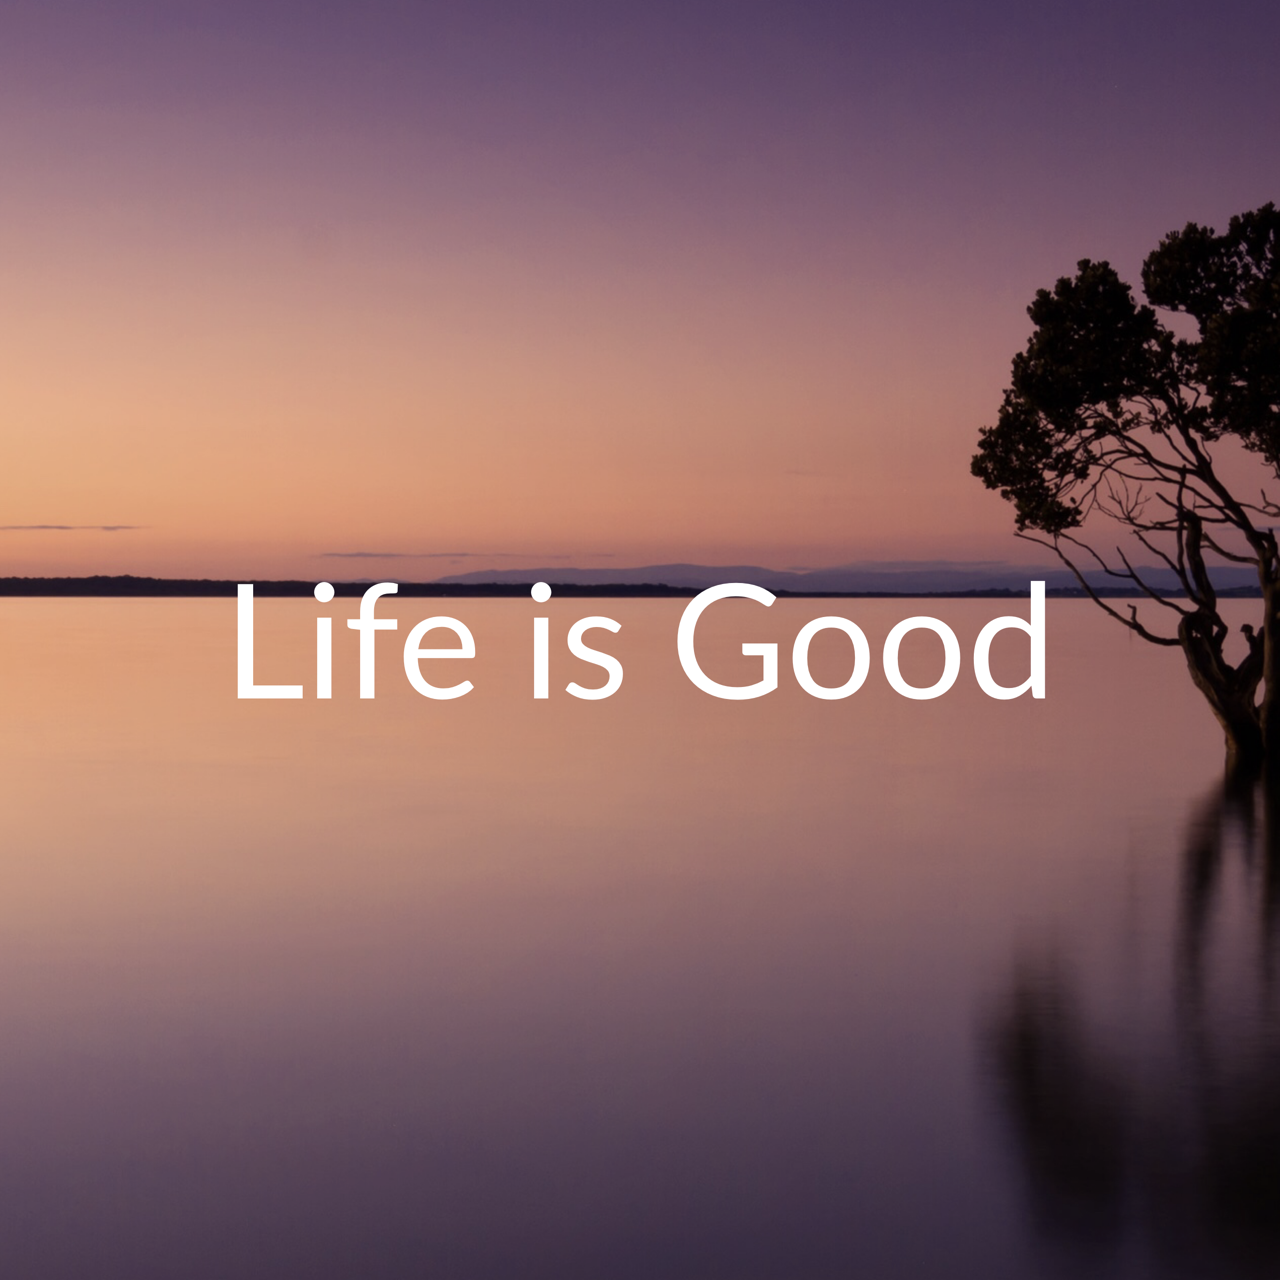 2019-08-04_life-is-good-title-card.png